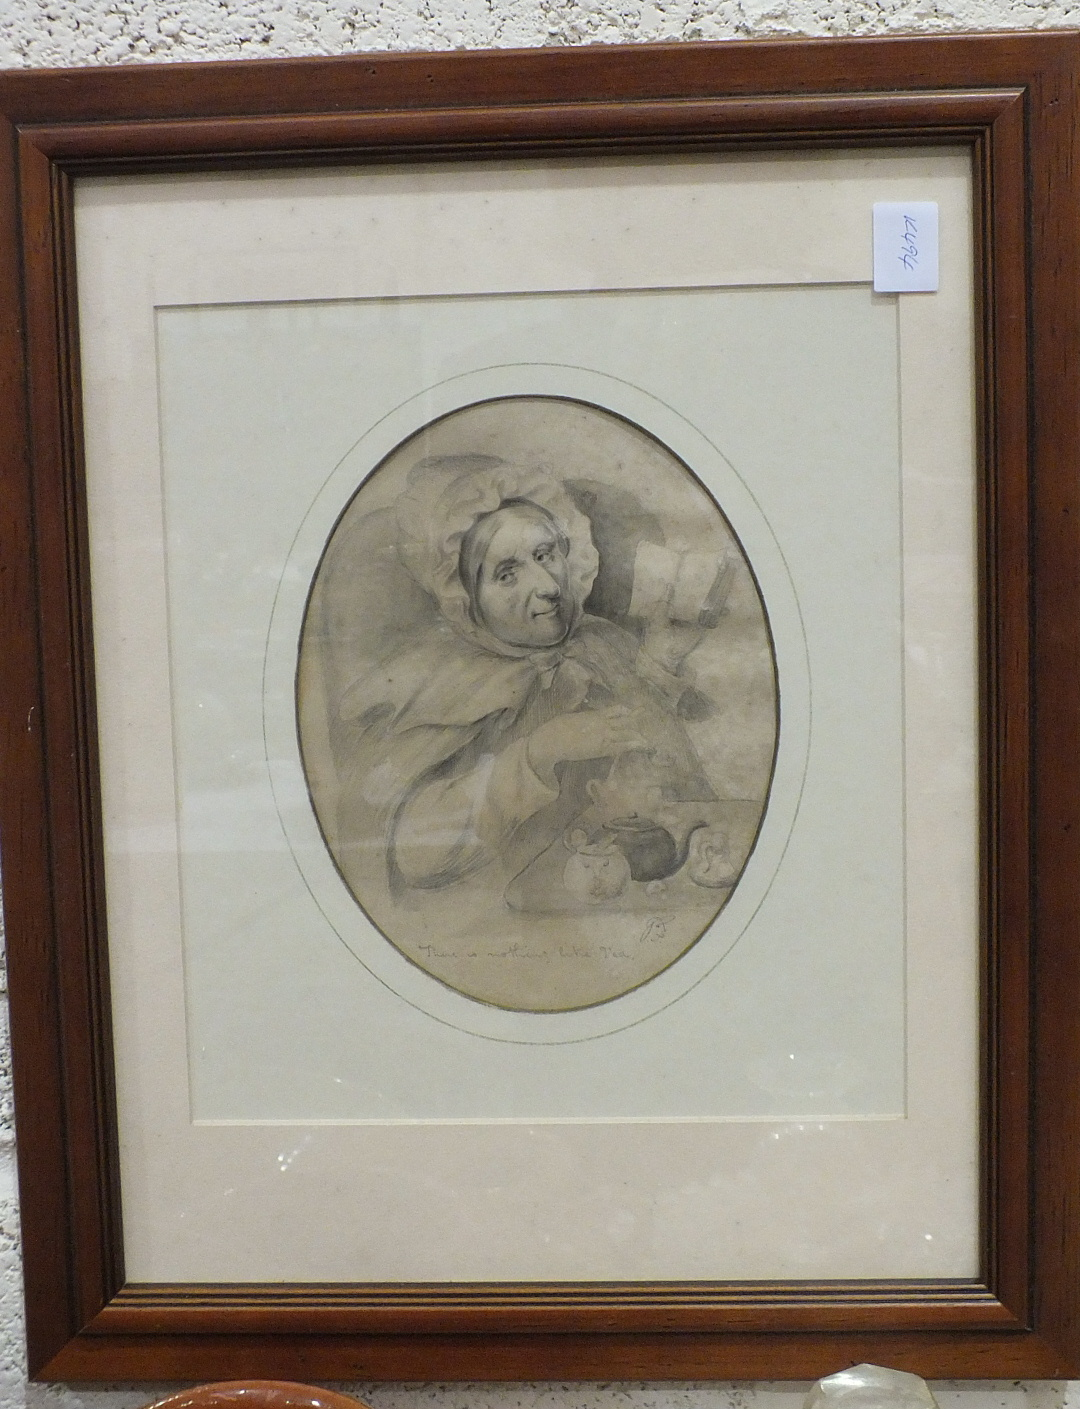 Lot 57 - J C Bonfield, 'Knights and Soldiers Entering a Castle', watercolour and pencil, signed and